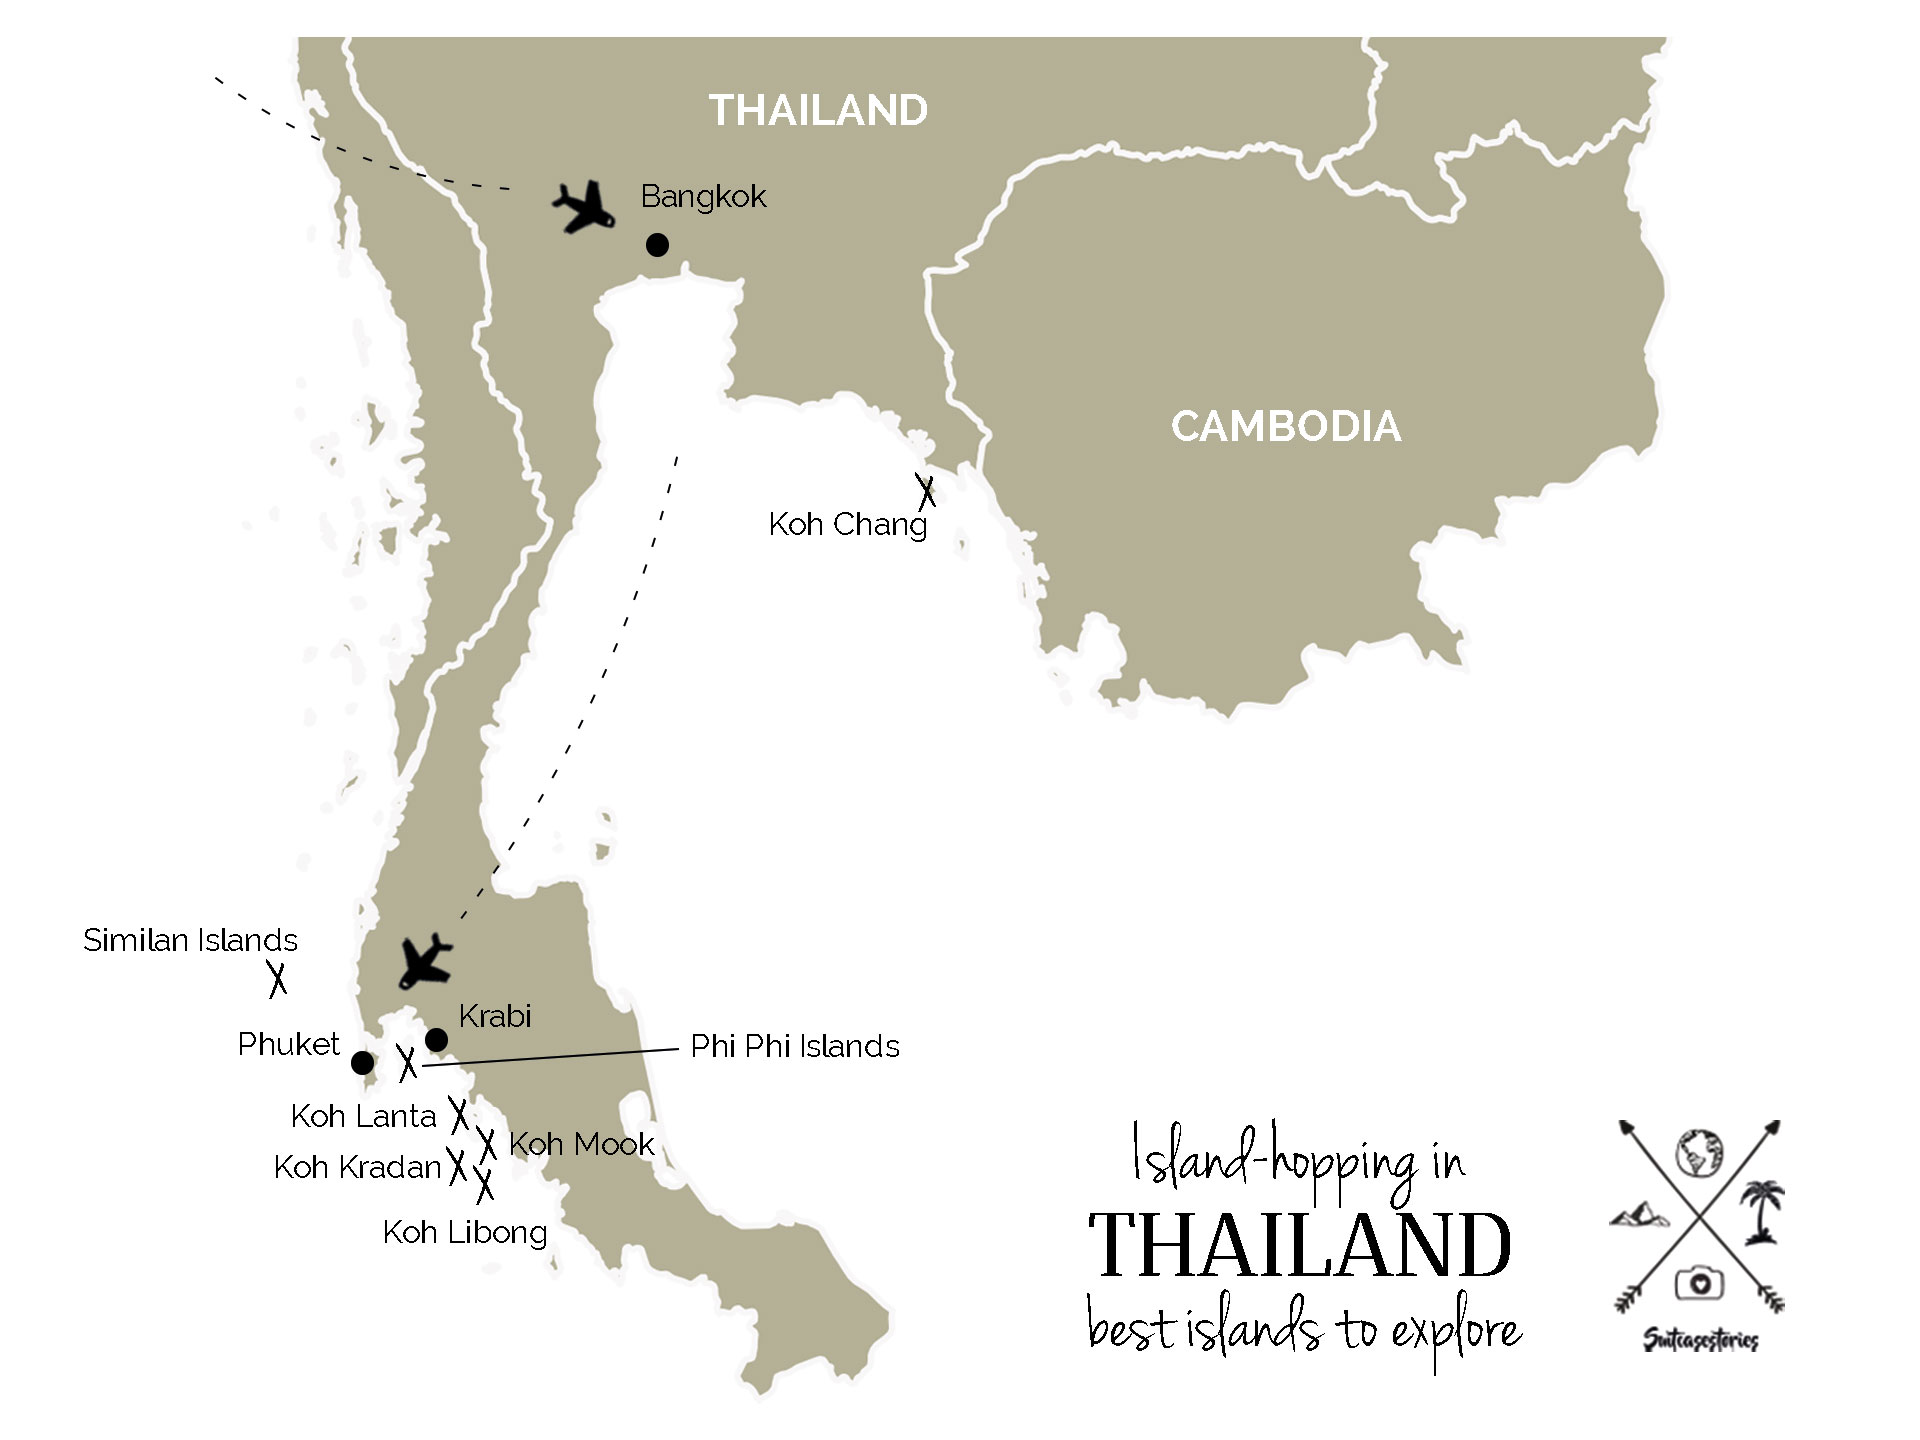 Map of Thailand's best islands to explore